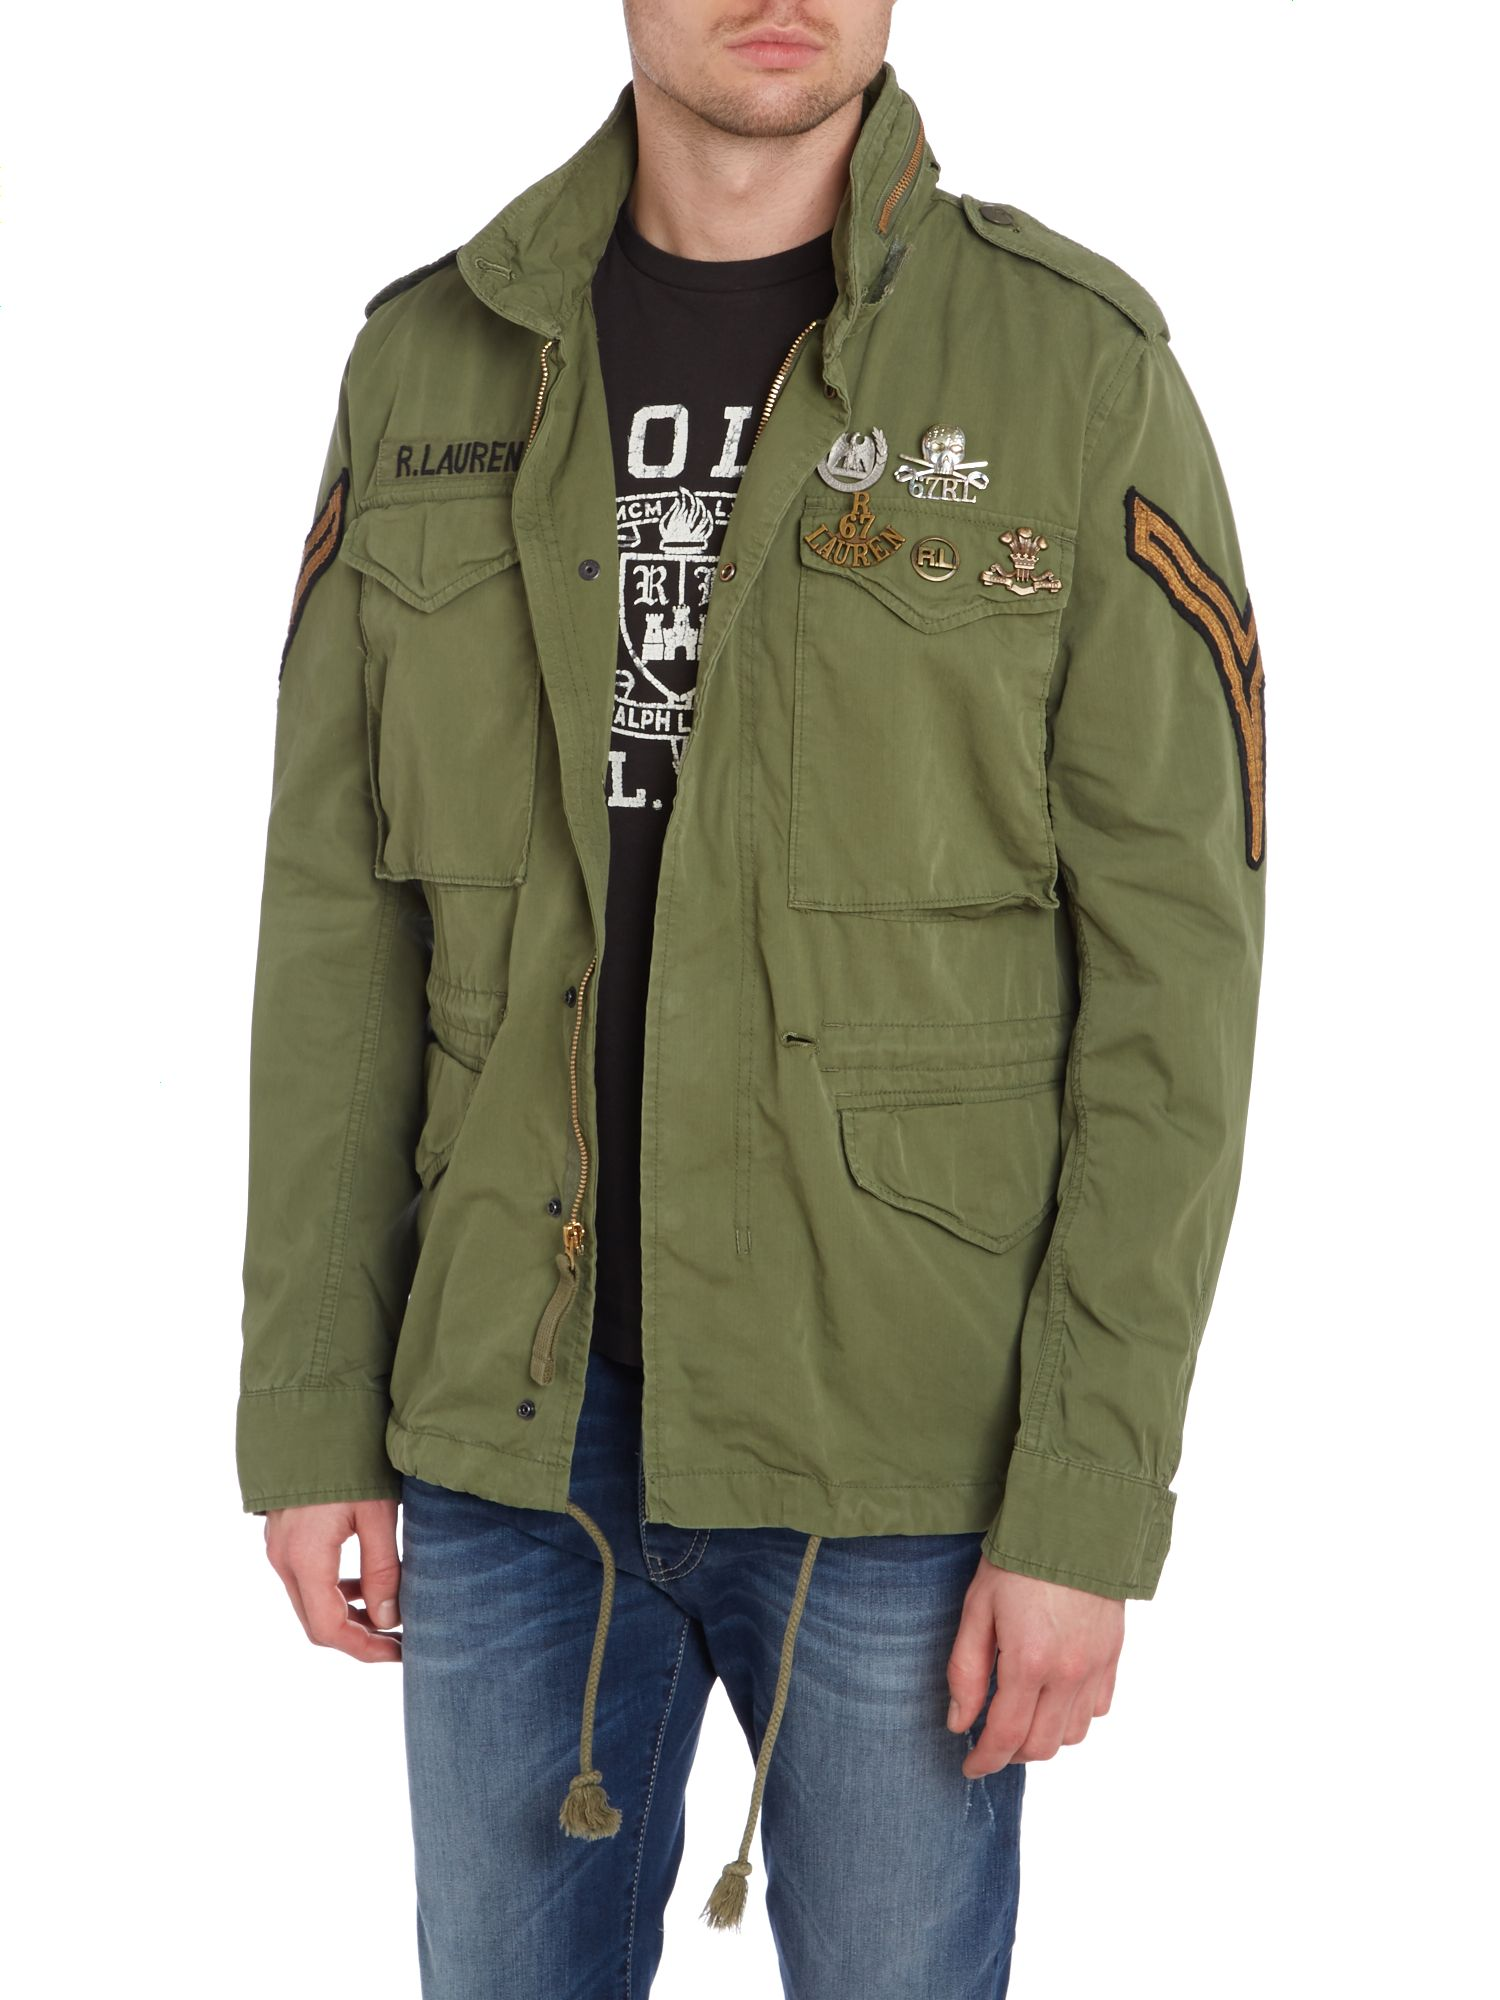 Officers field jacket